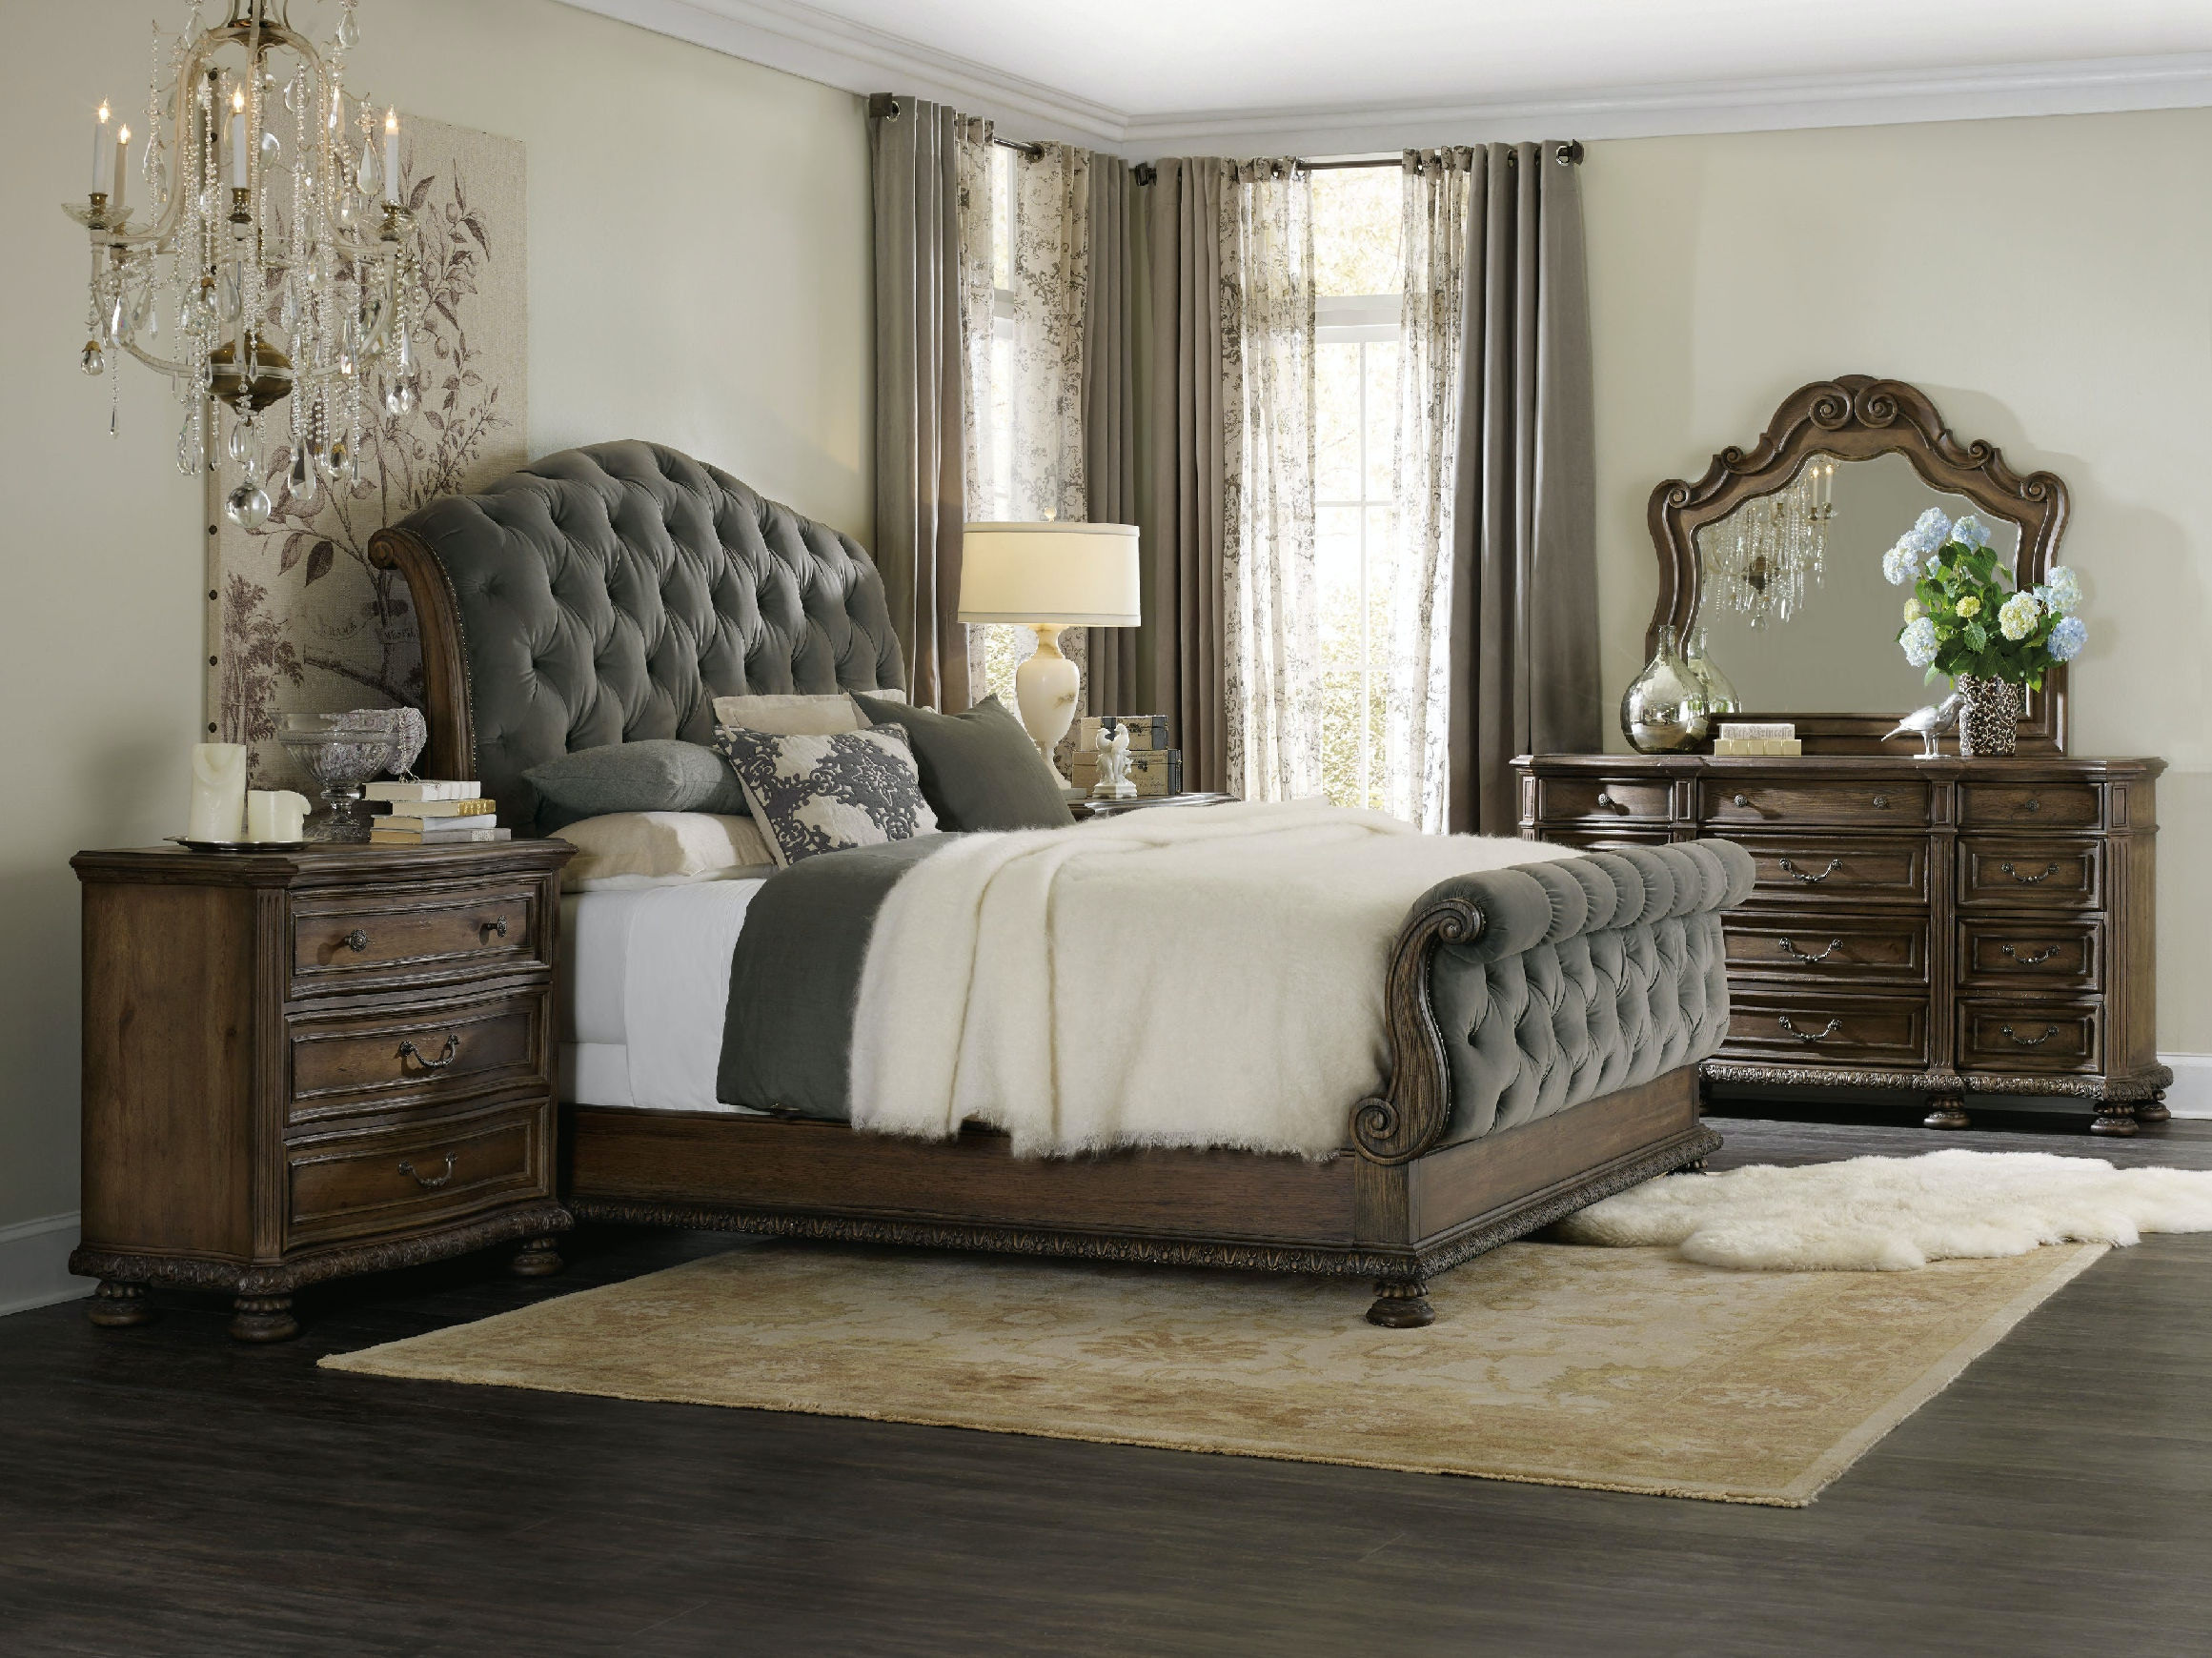 Hooker Furniture Bedroom Rhapsody King Tufted Bed 5070 90566A GRY